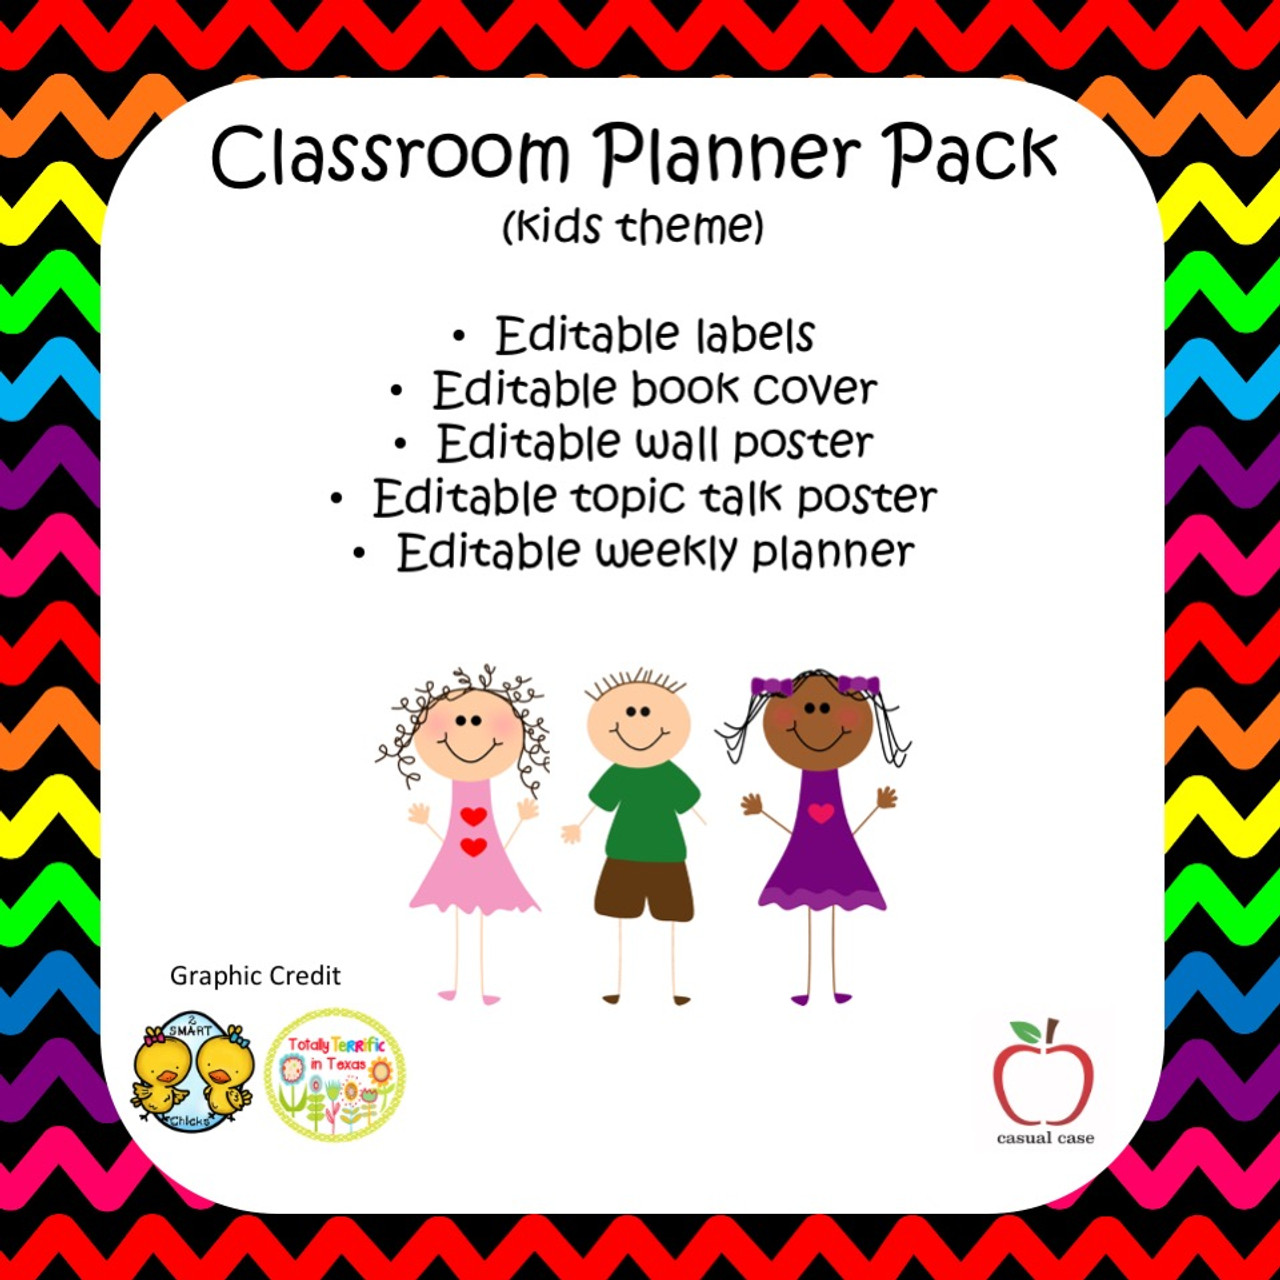 Classroom Planner Package - Cute Kids Theme